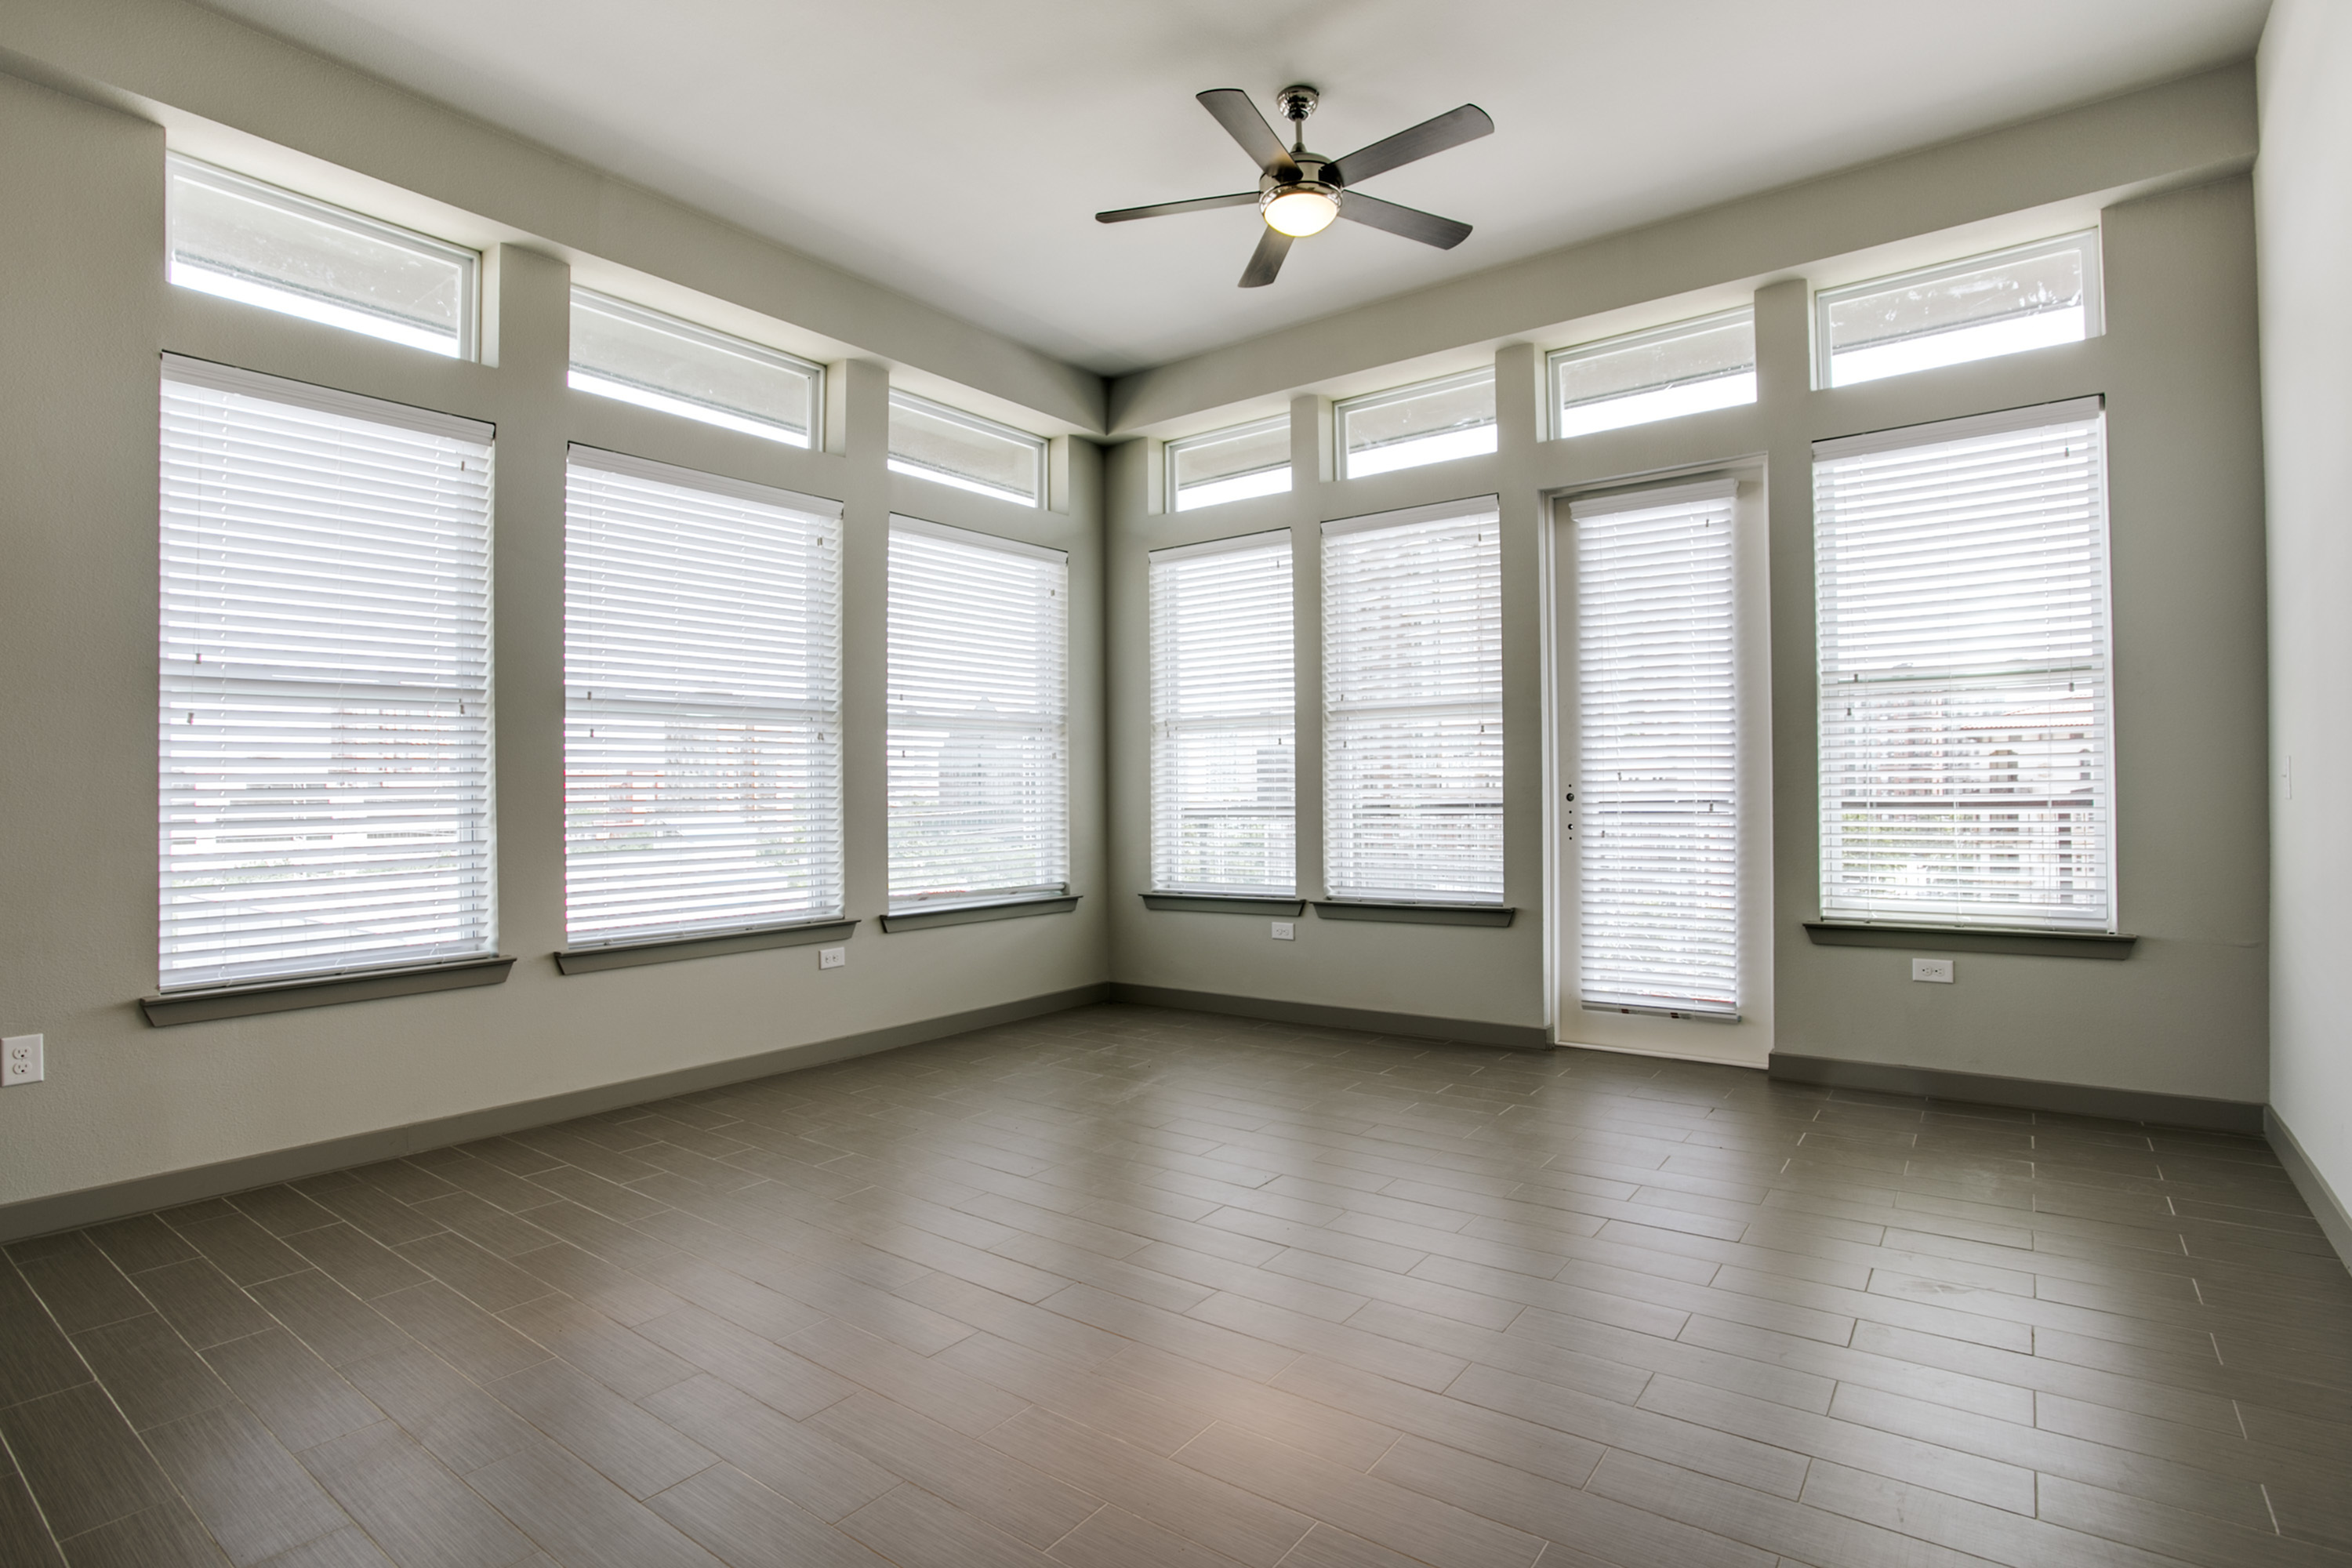 View of Living Room, Showing Ceiling Fan and Window Views at Routh Street Flats Apartments